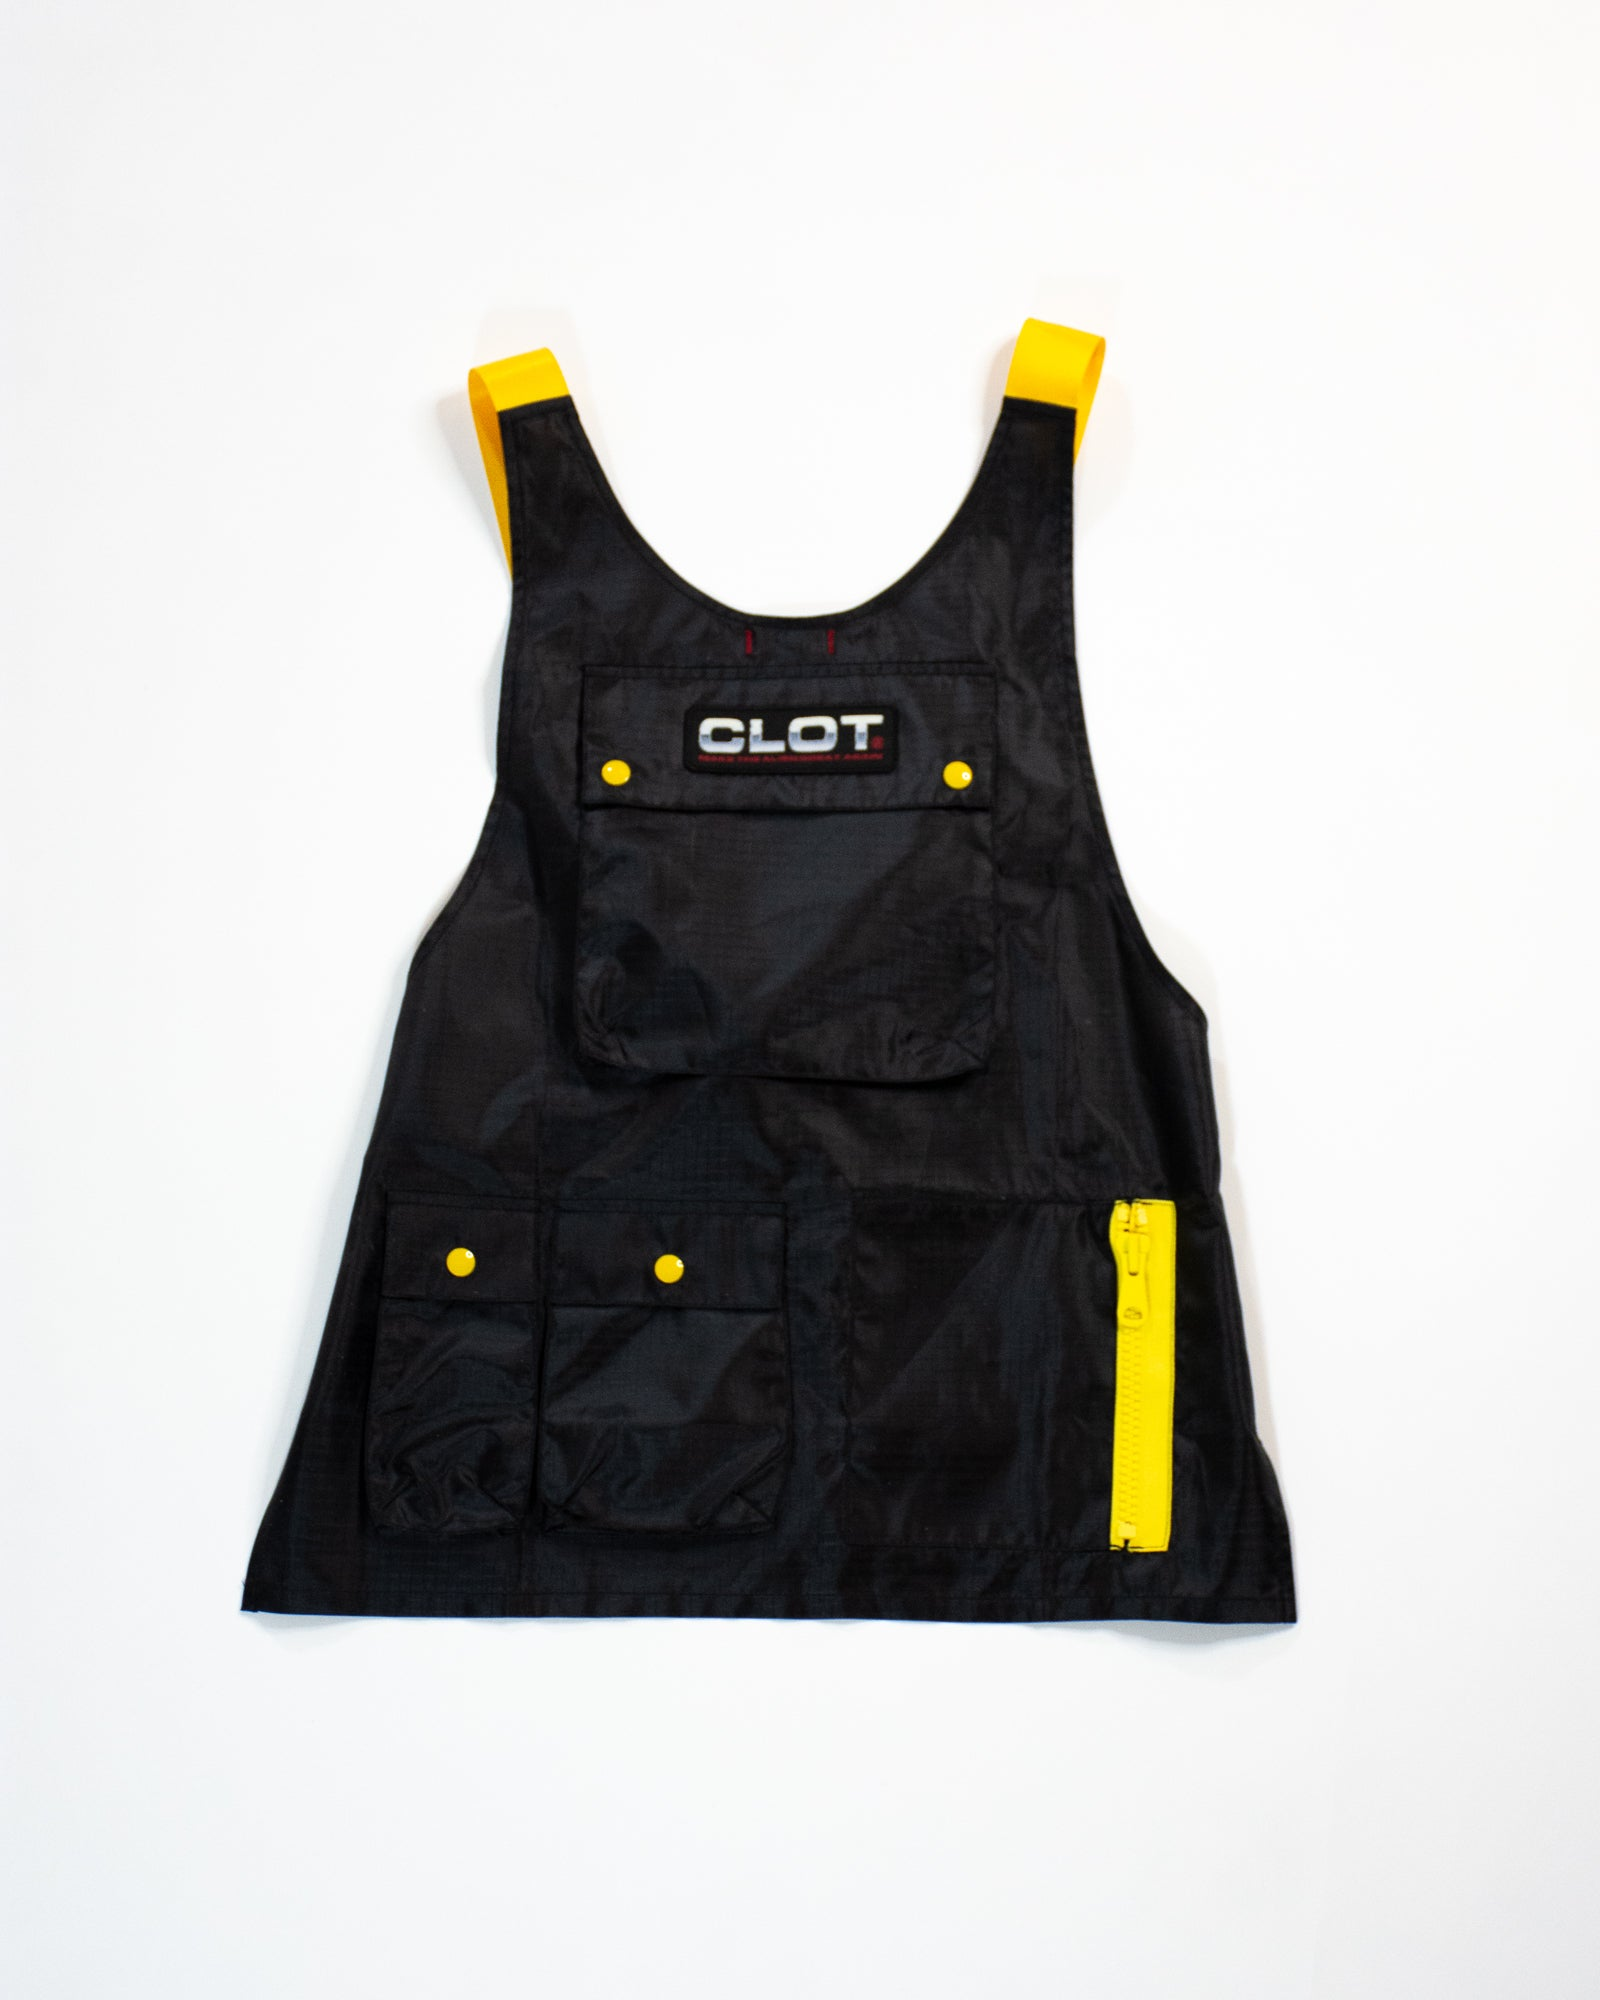 CLOT Tactical Apron Vest